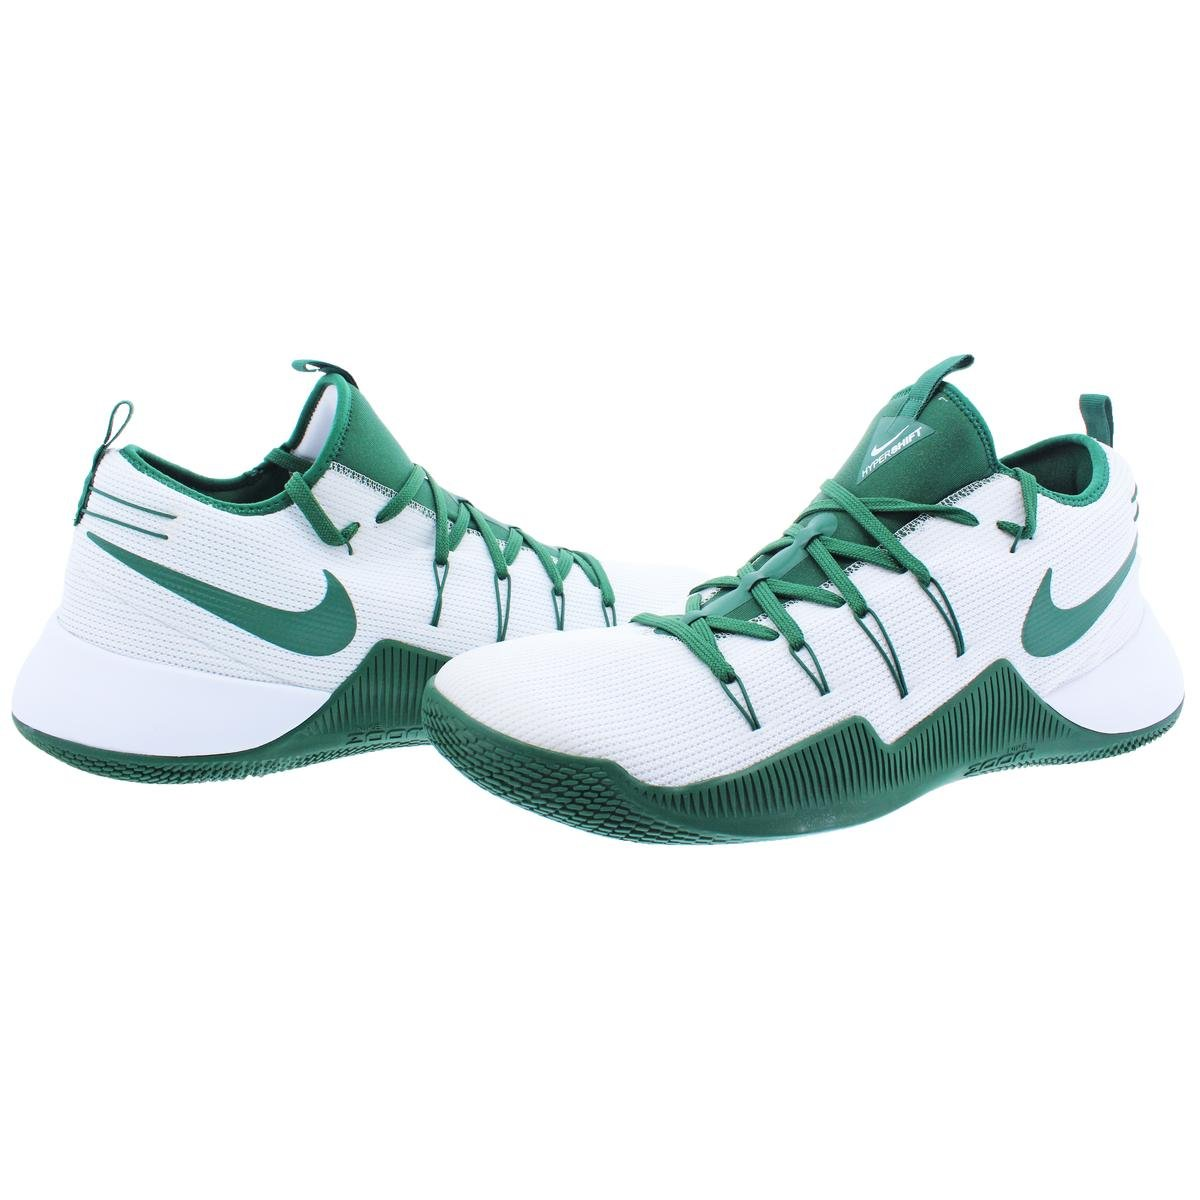 finest selection cffd8 9f01a Amazon.com   Nike Hypershift TB Promo Men s Mesh Lace-Up Basketball Shoes  Green Size 18   Basketball